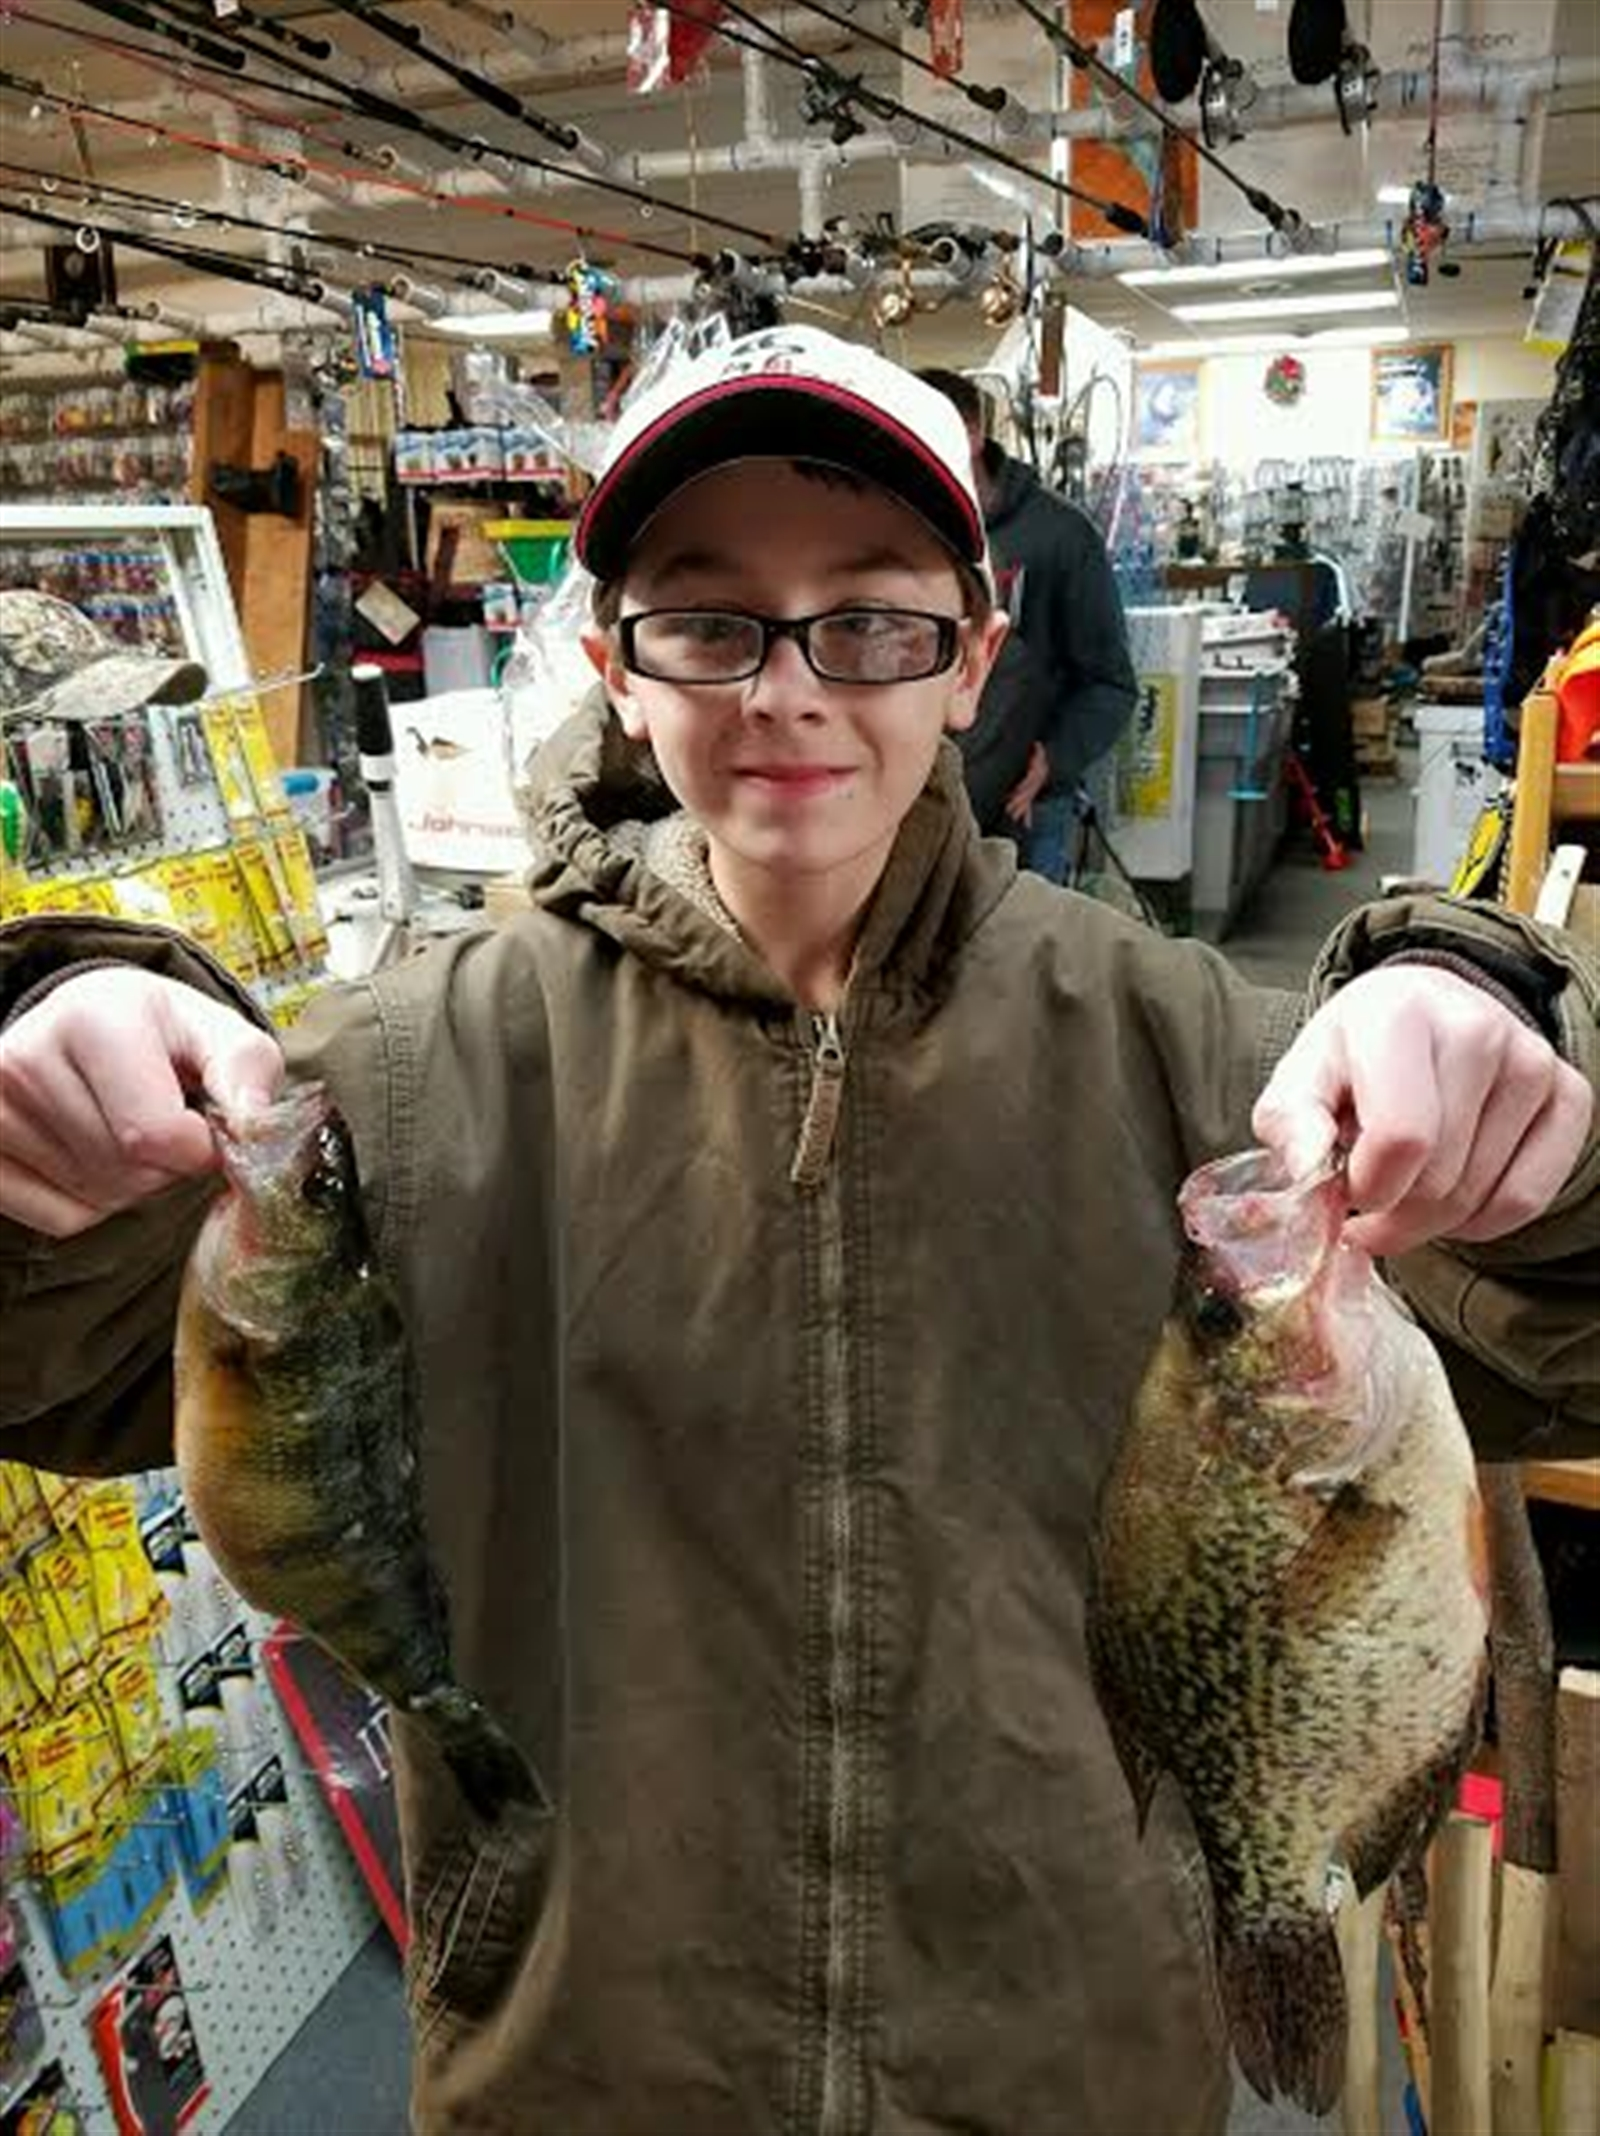 Austin Schmitt of Lockport shows off some fish caught on Honeoye Lake through the ice over the weekend. This was dinner!